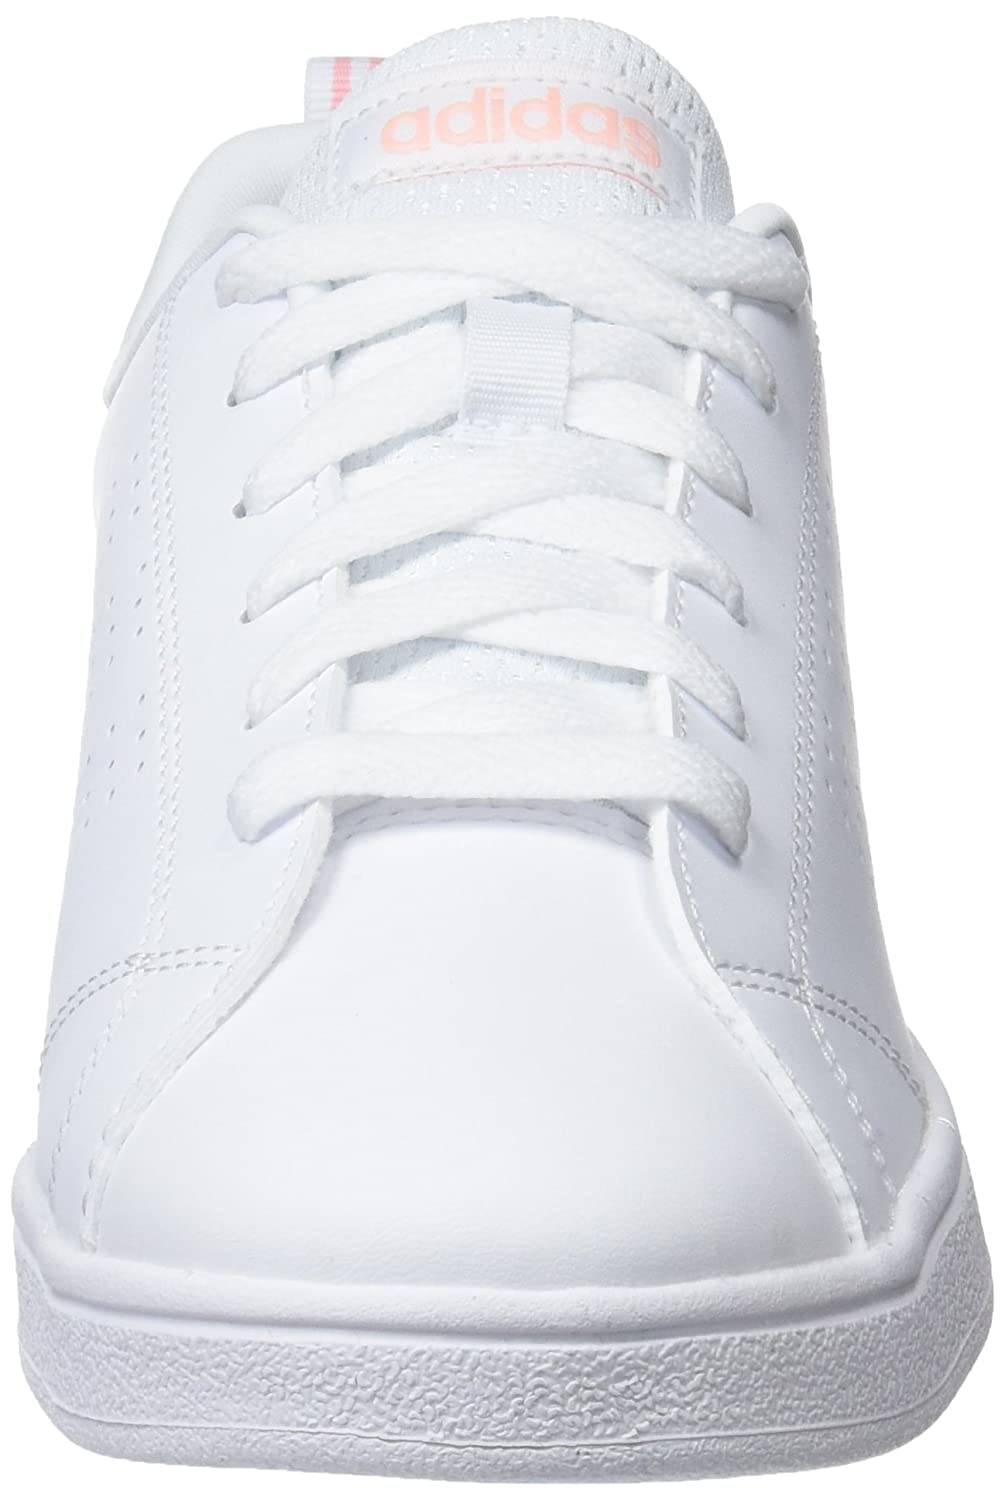 4b61c3d73a Tênis Adidas Advantage VS Clean Neo: Amazon.com.br: Amazon Moda